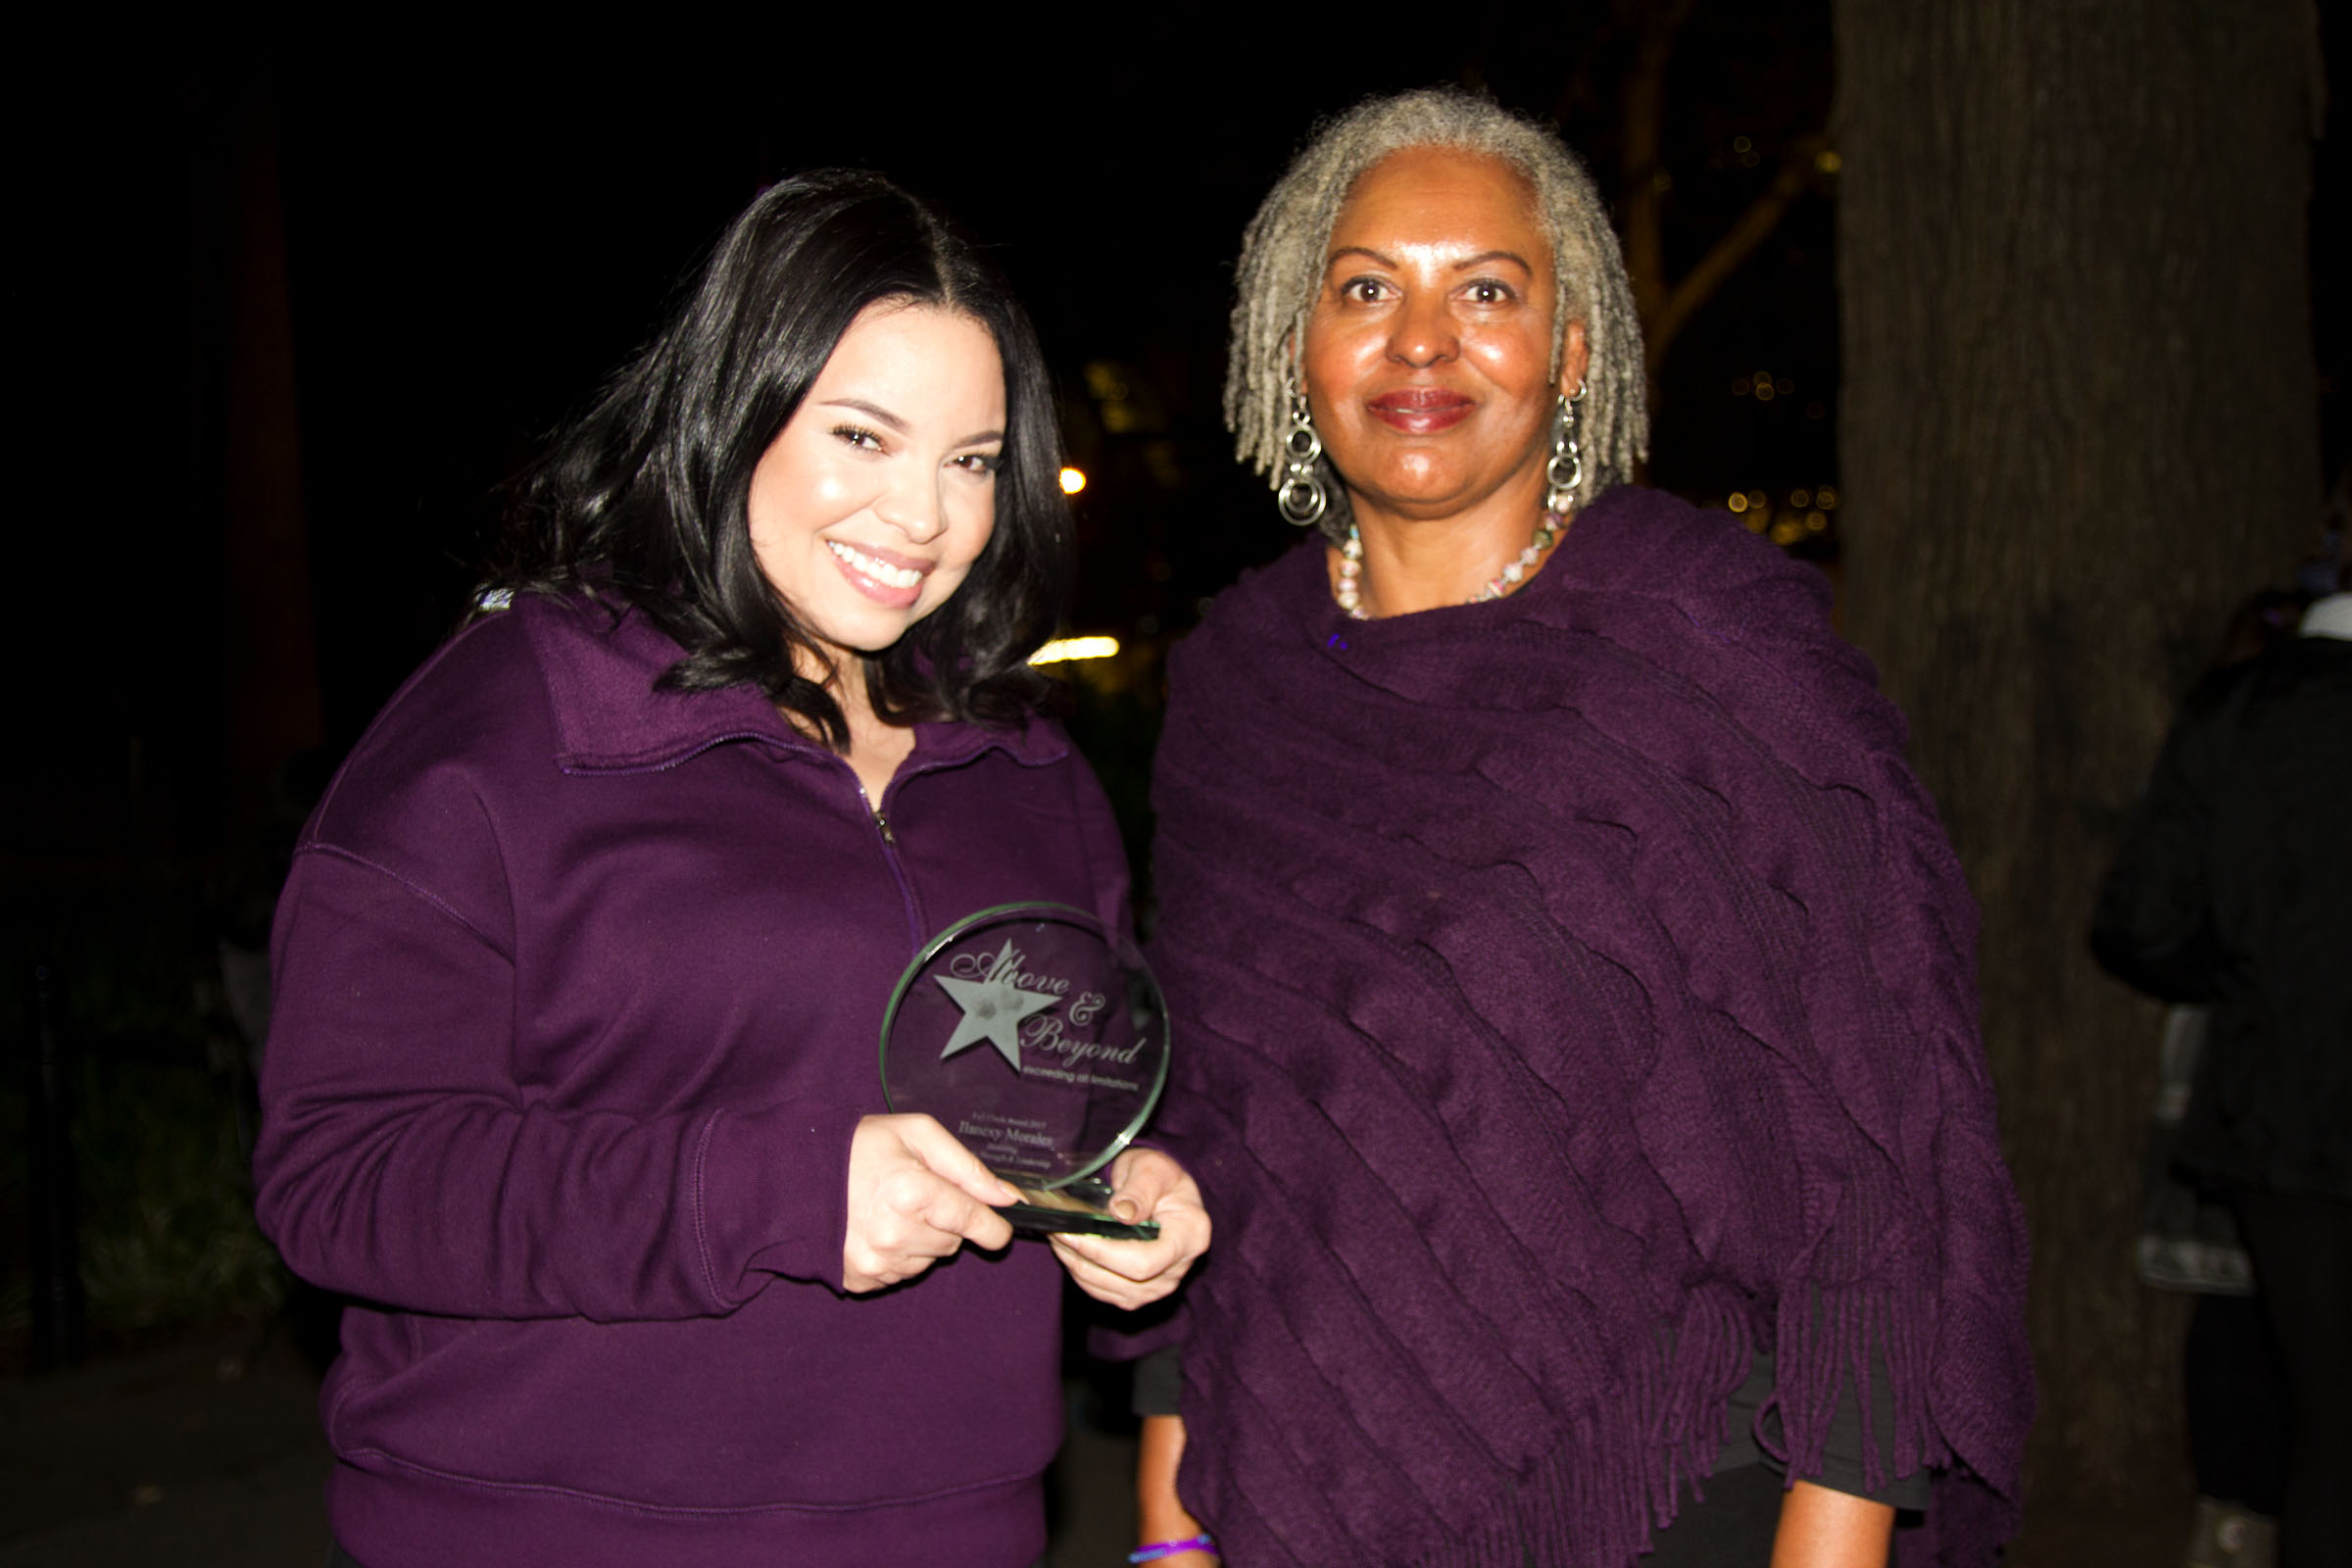 Executive Director Gwen Wright presents Ilianexy Morales with the 2017 Full Circle Award